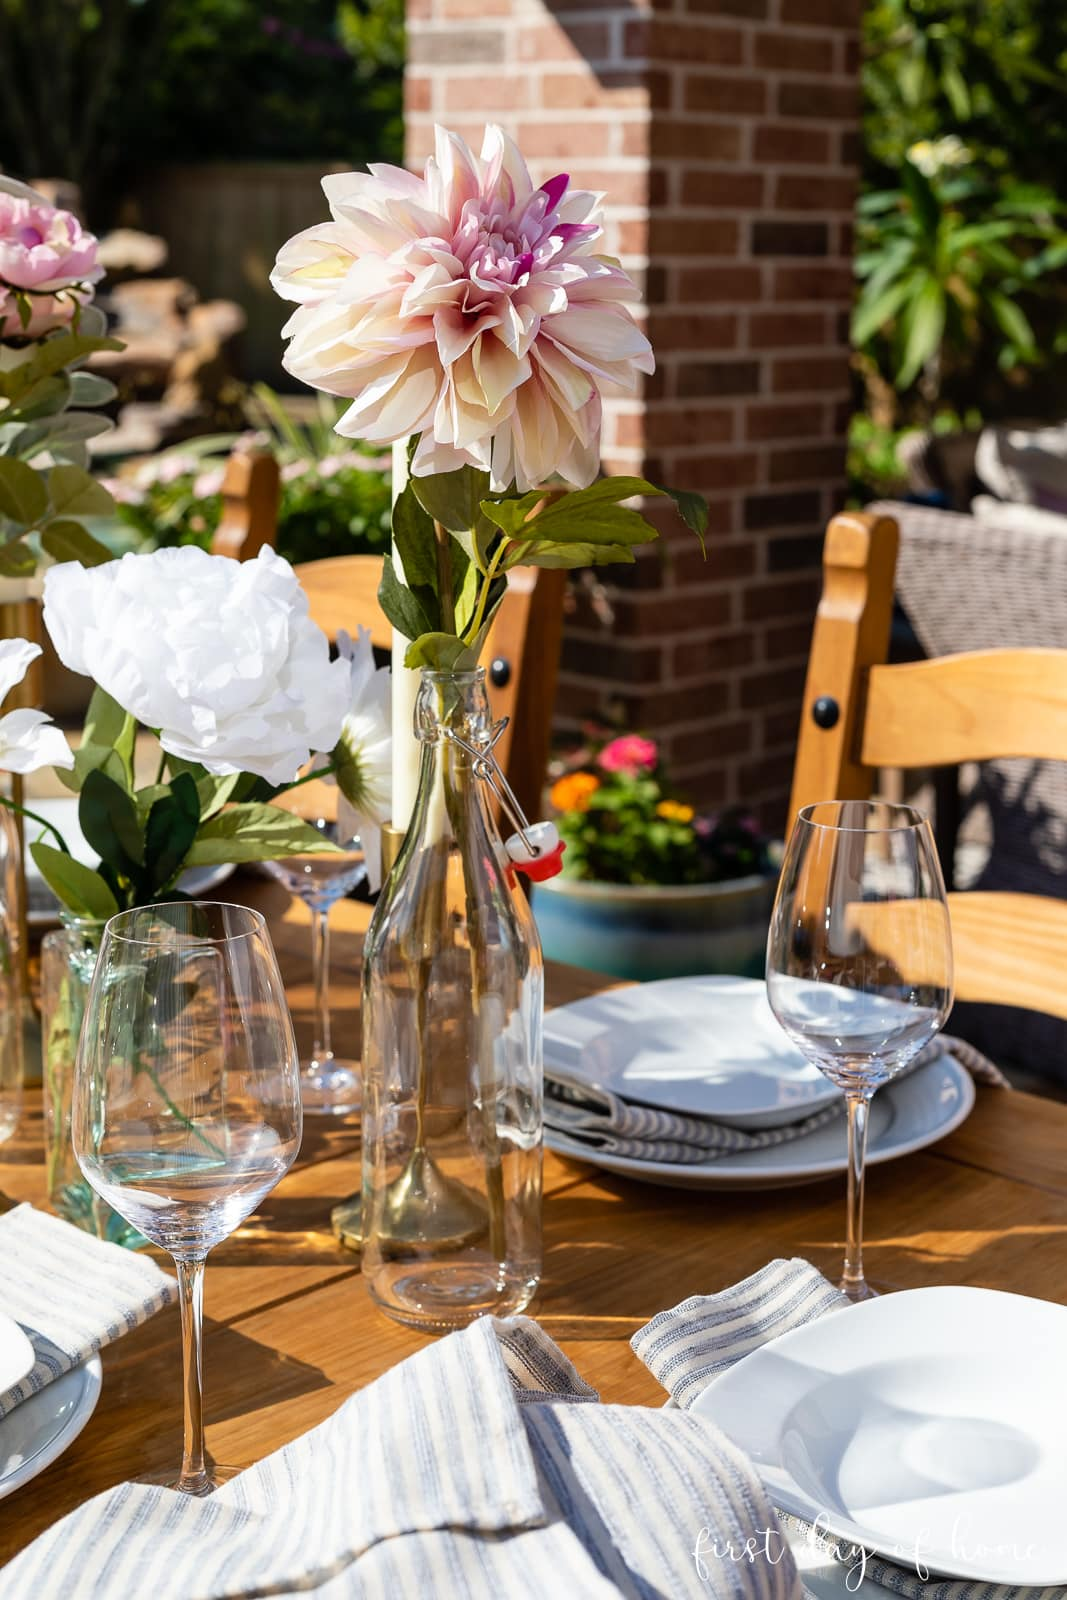 Dahlia in glass bottle on summer outdoor dining table